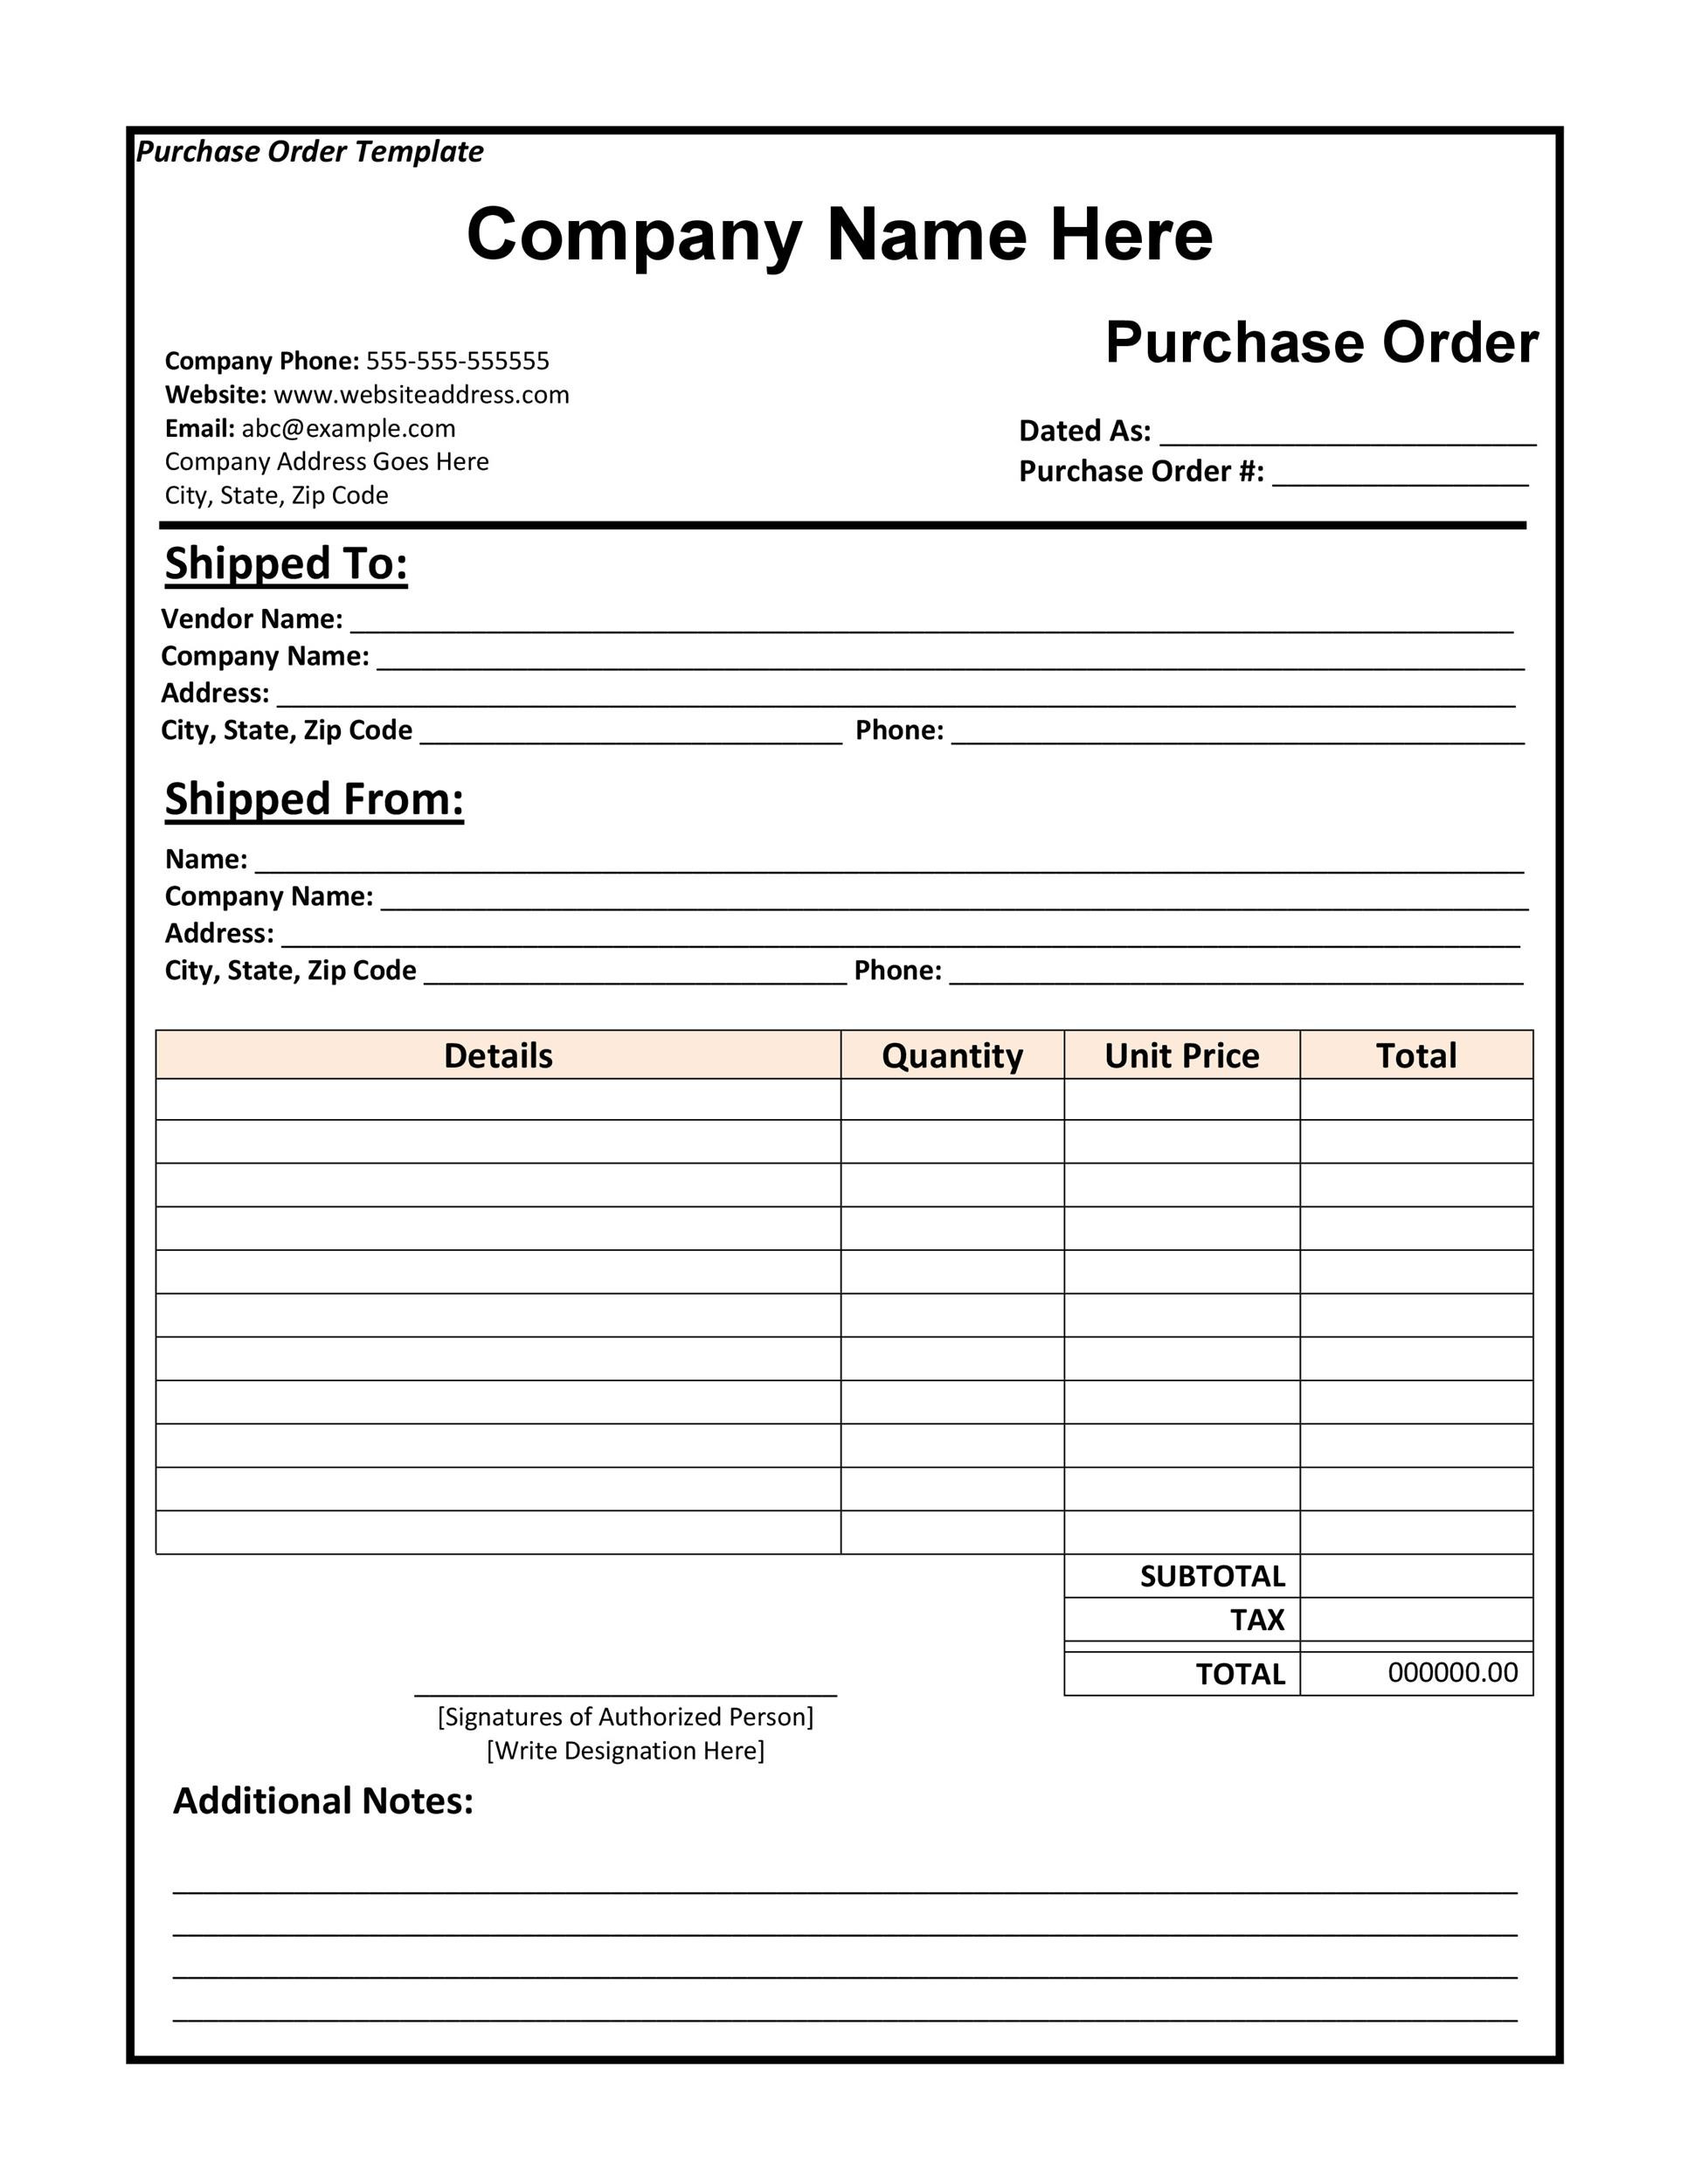 43 Free Purchase Order Templates [in Word Excel PDF]